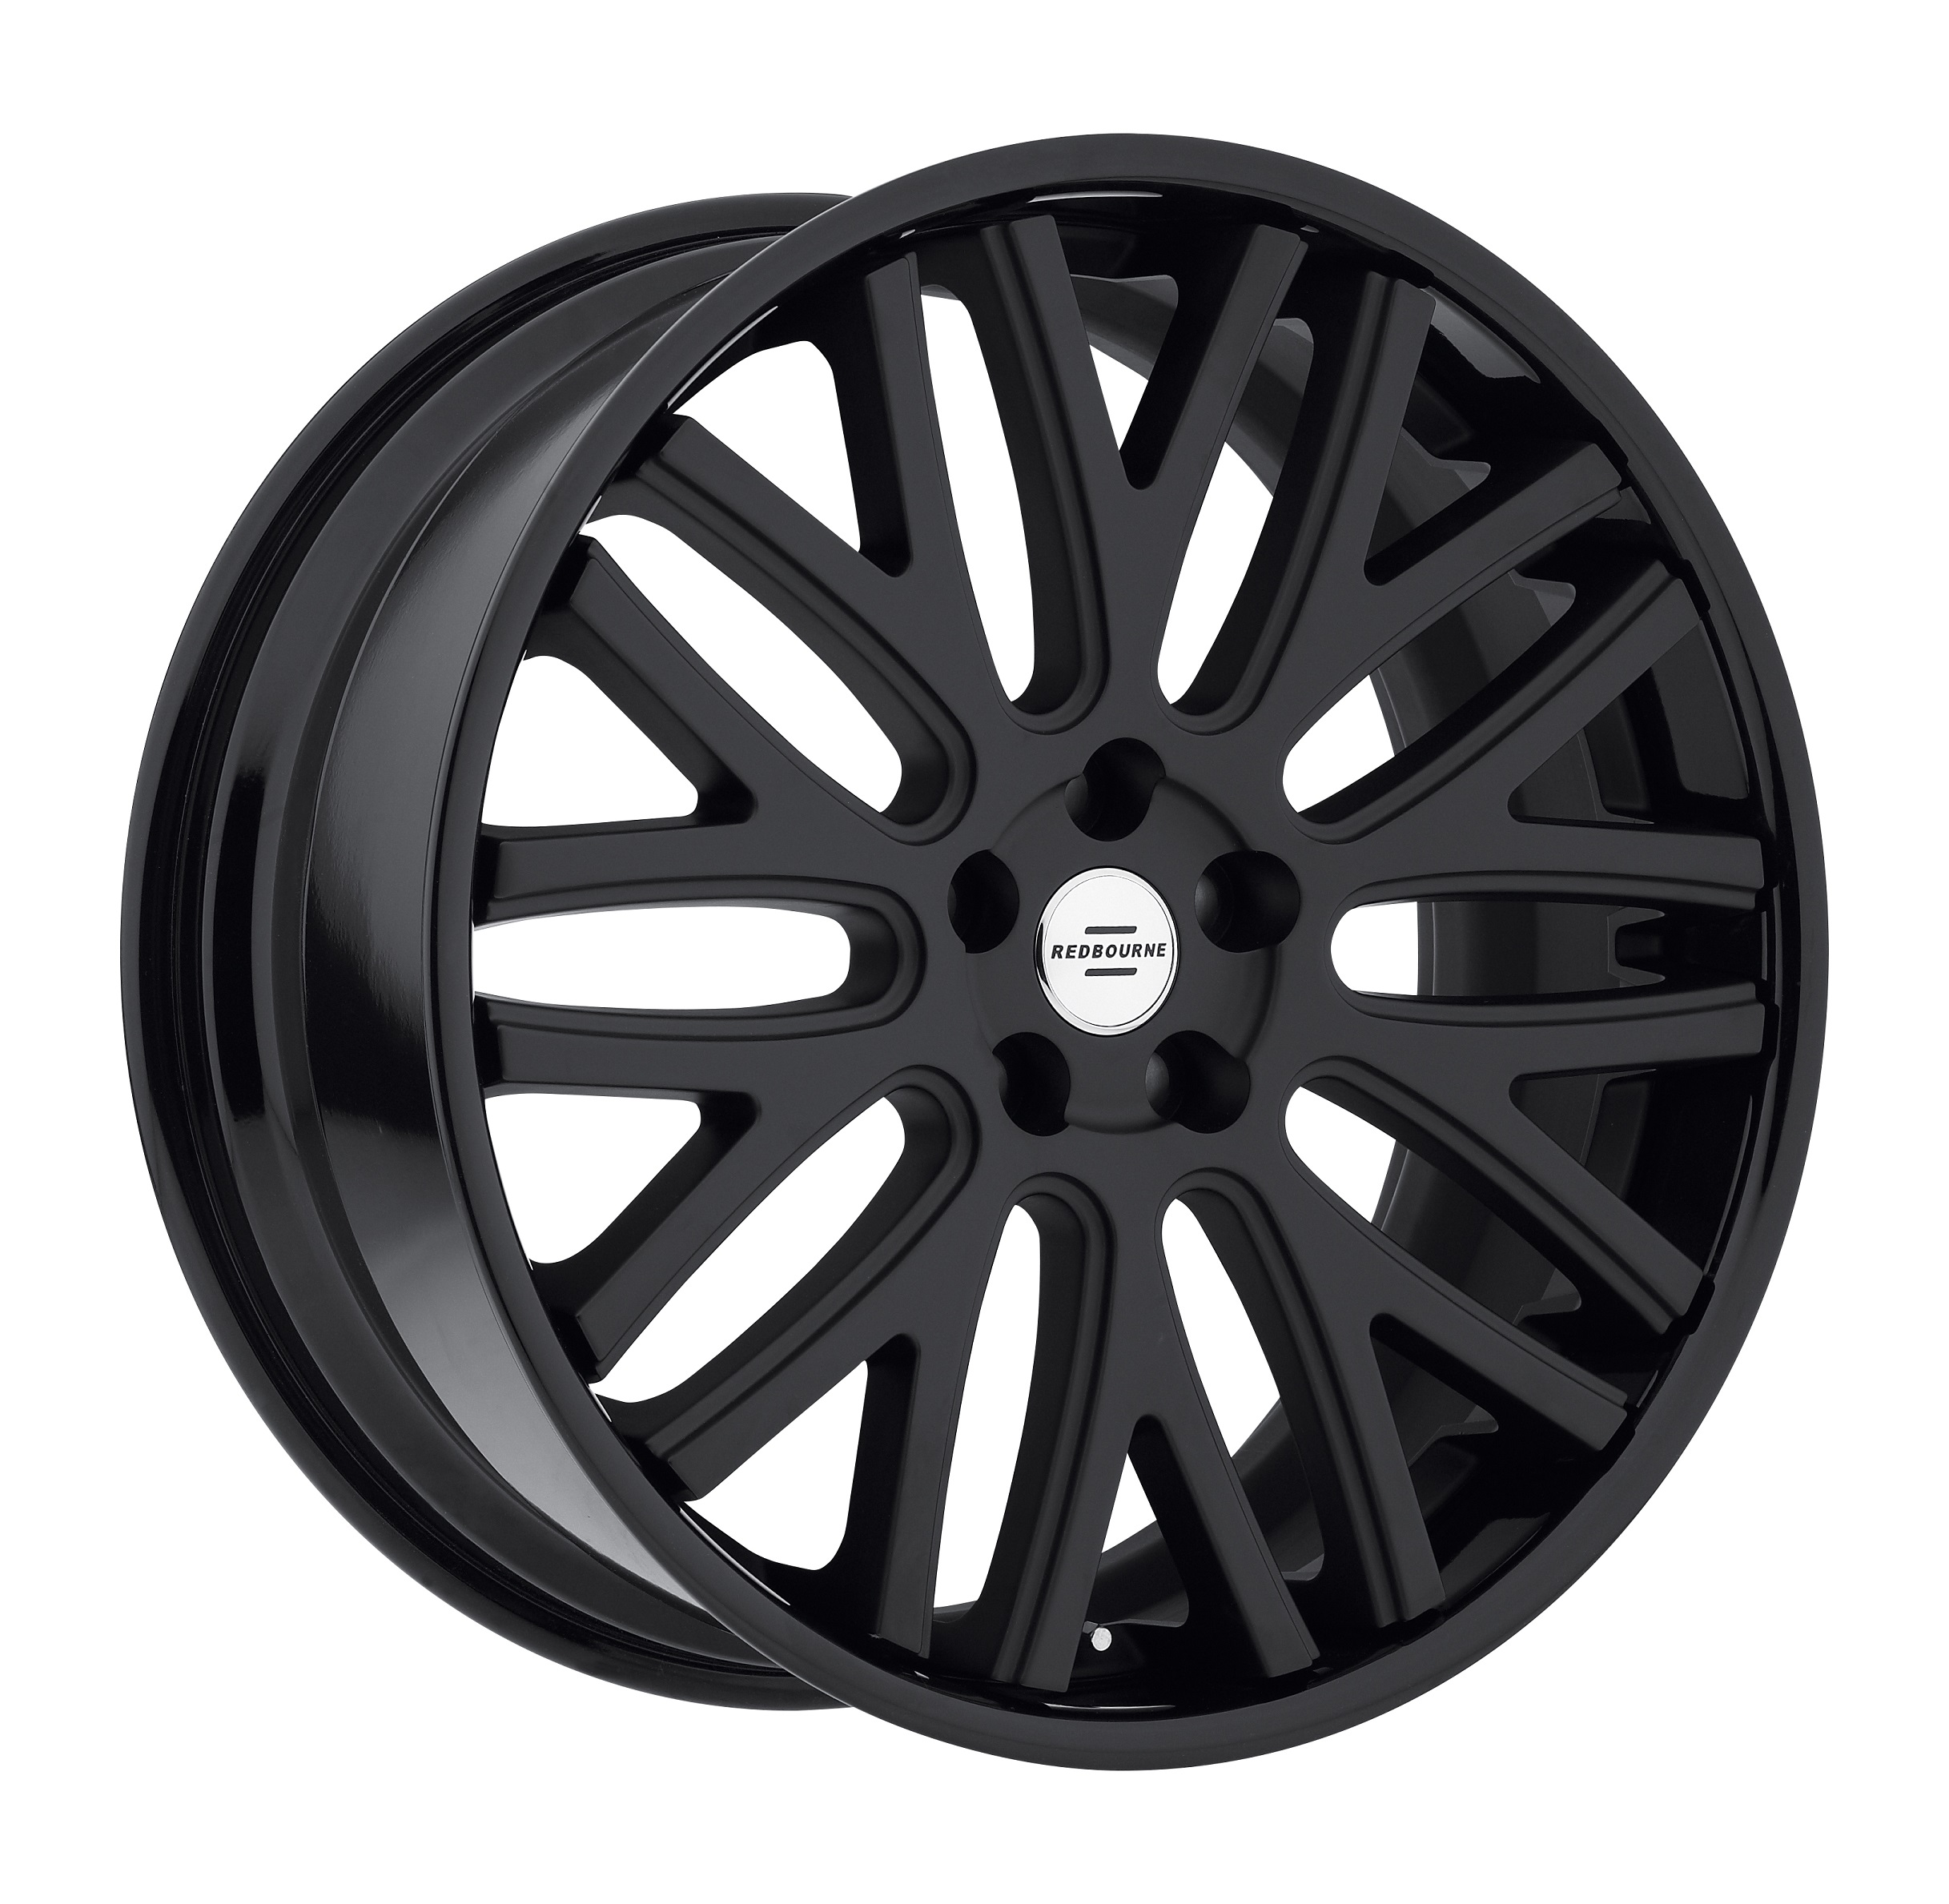 Redbourne Wheels Introduces Its Newest Land Rover Aftermarket